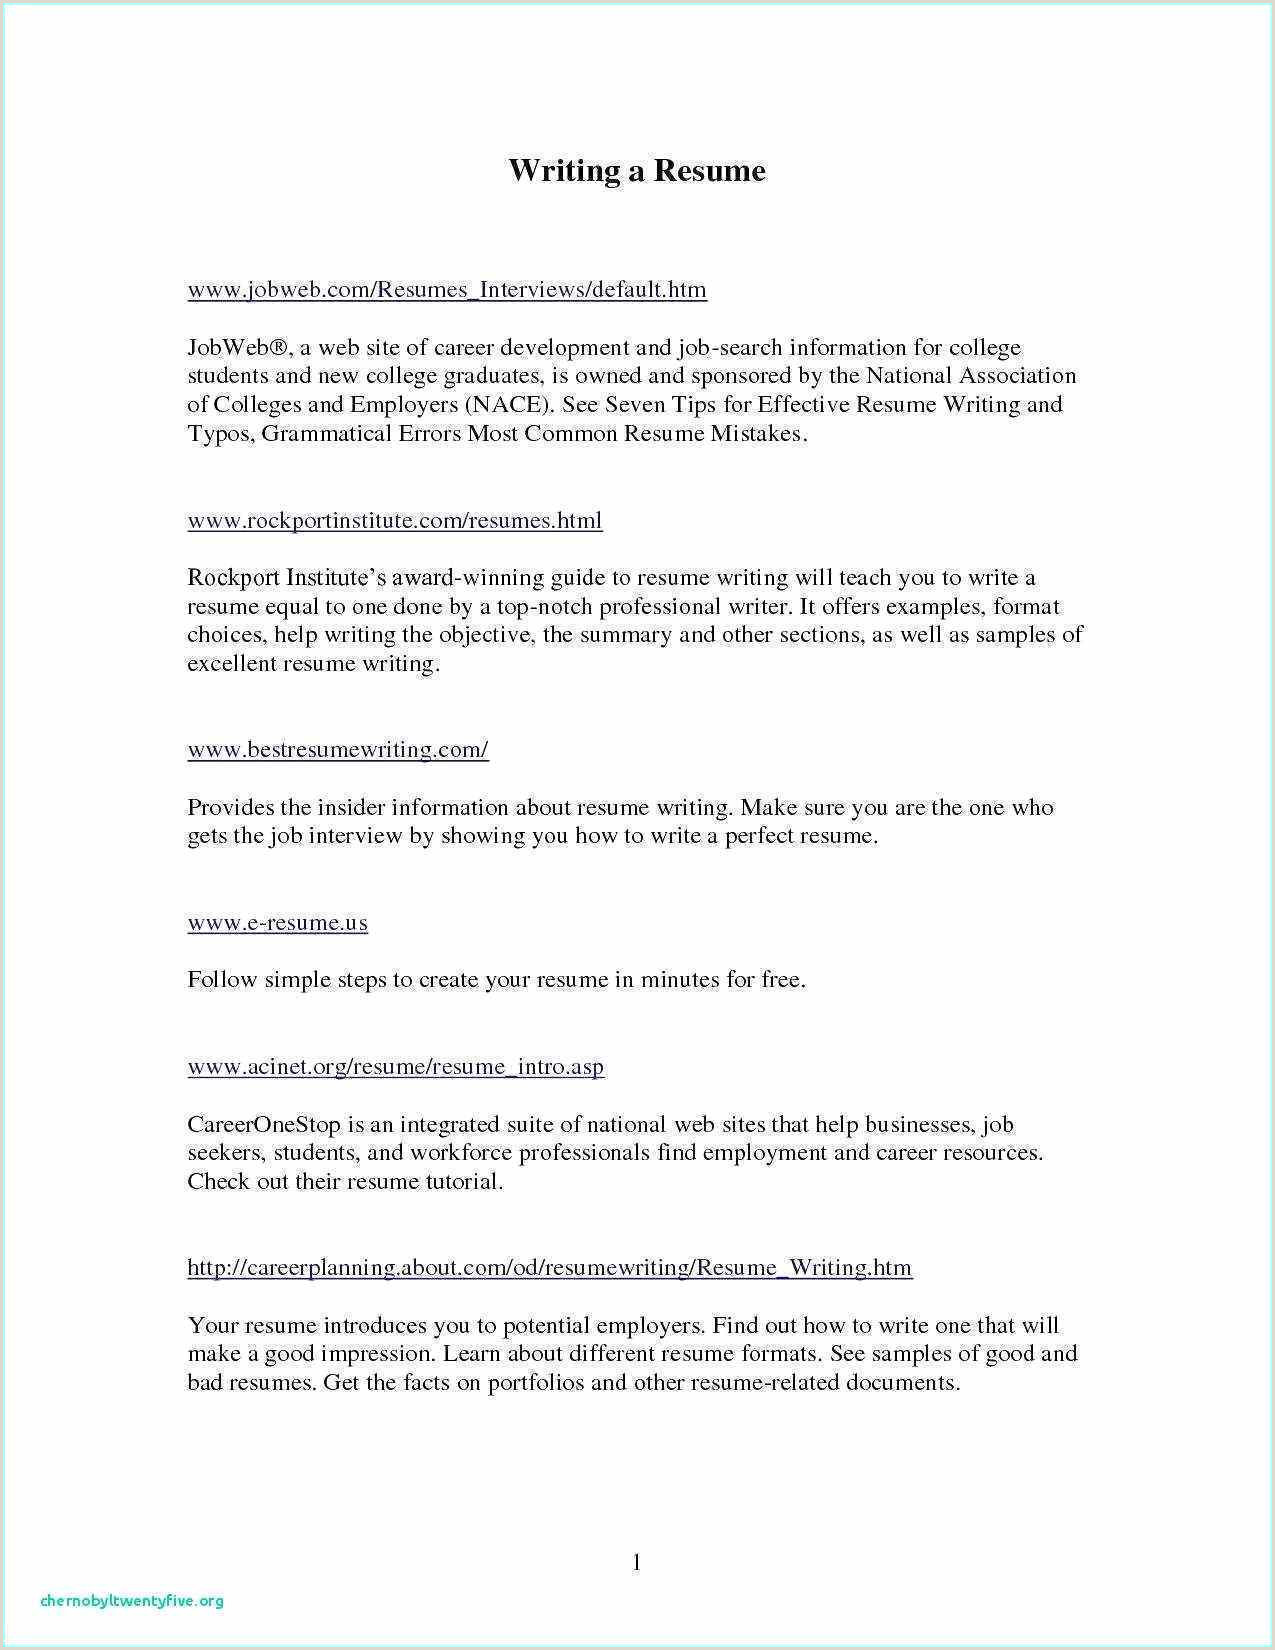 Business Analyst Cover Letter Sample imaxinaria